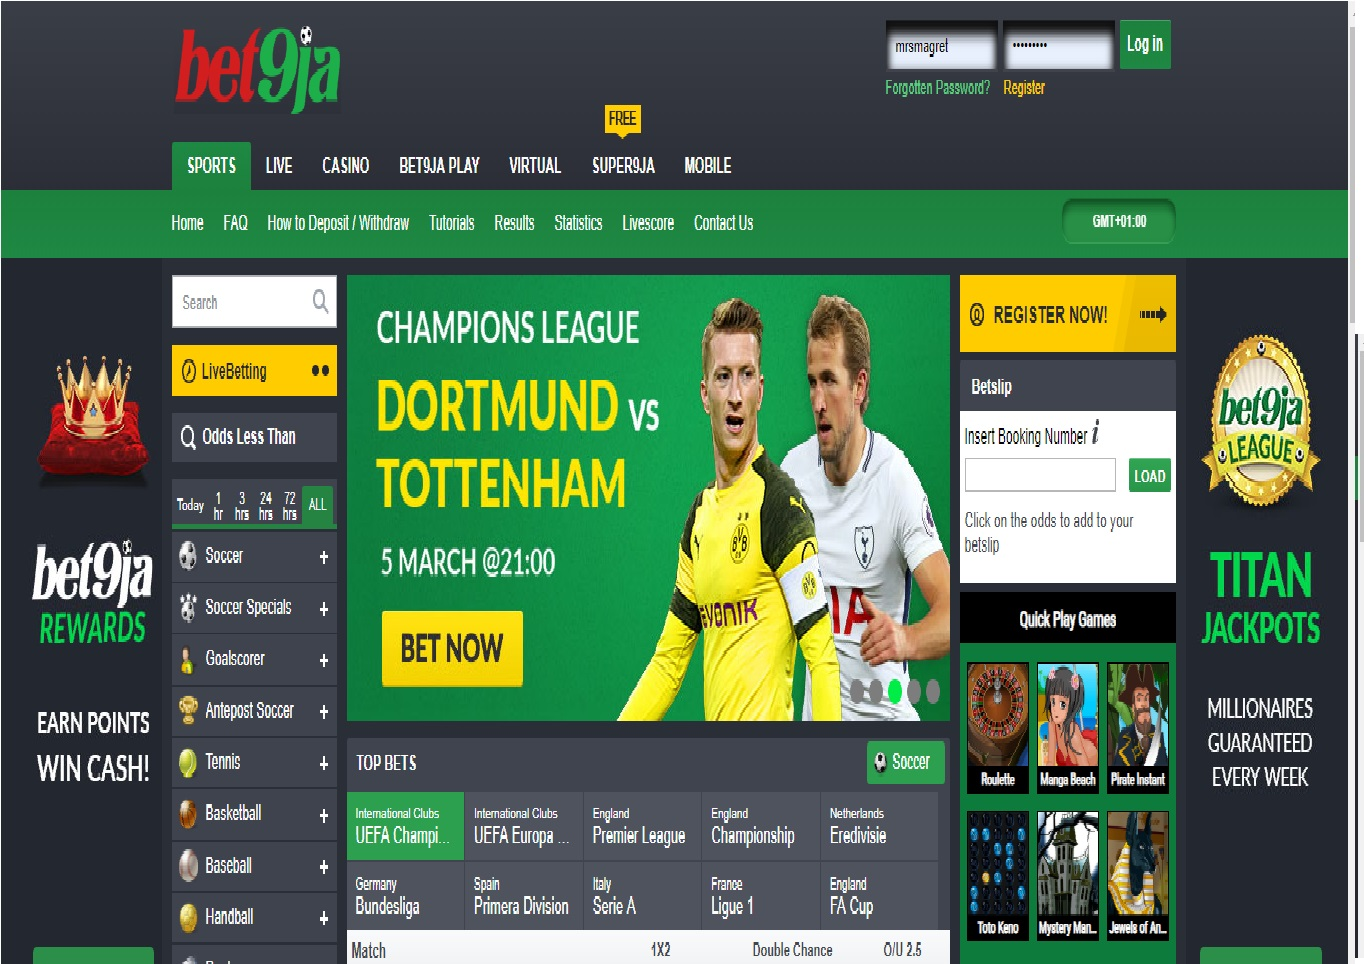 bet9ja vip prediction site